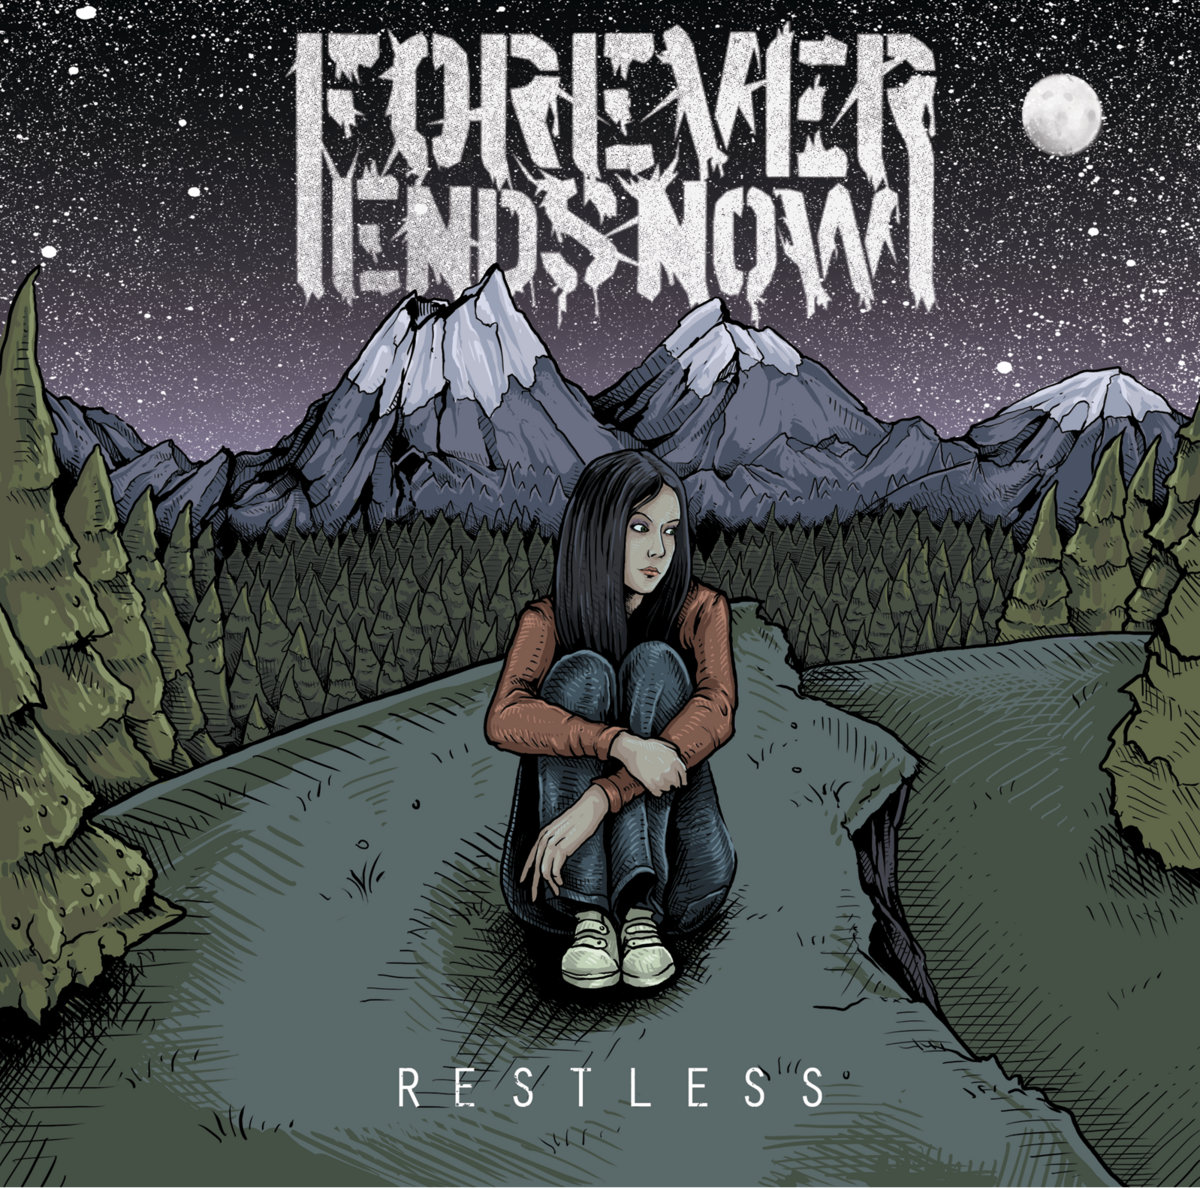 Forever Ends Now - Restless [EP] (2011)